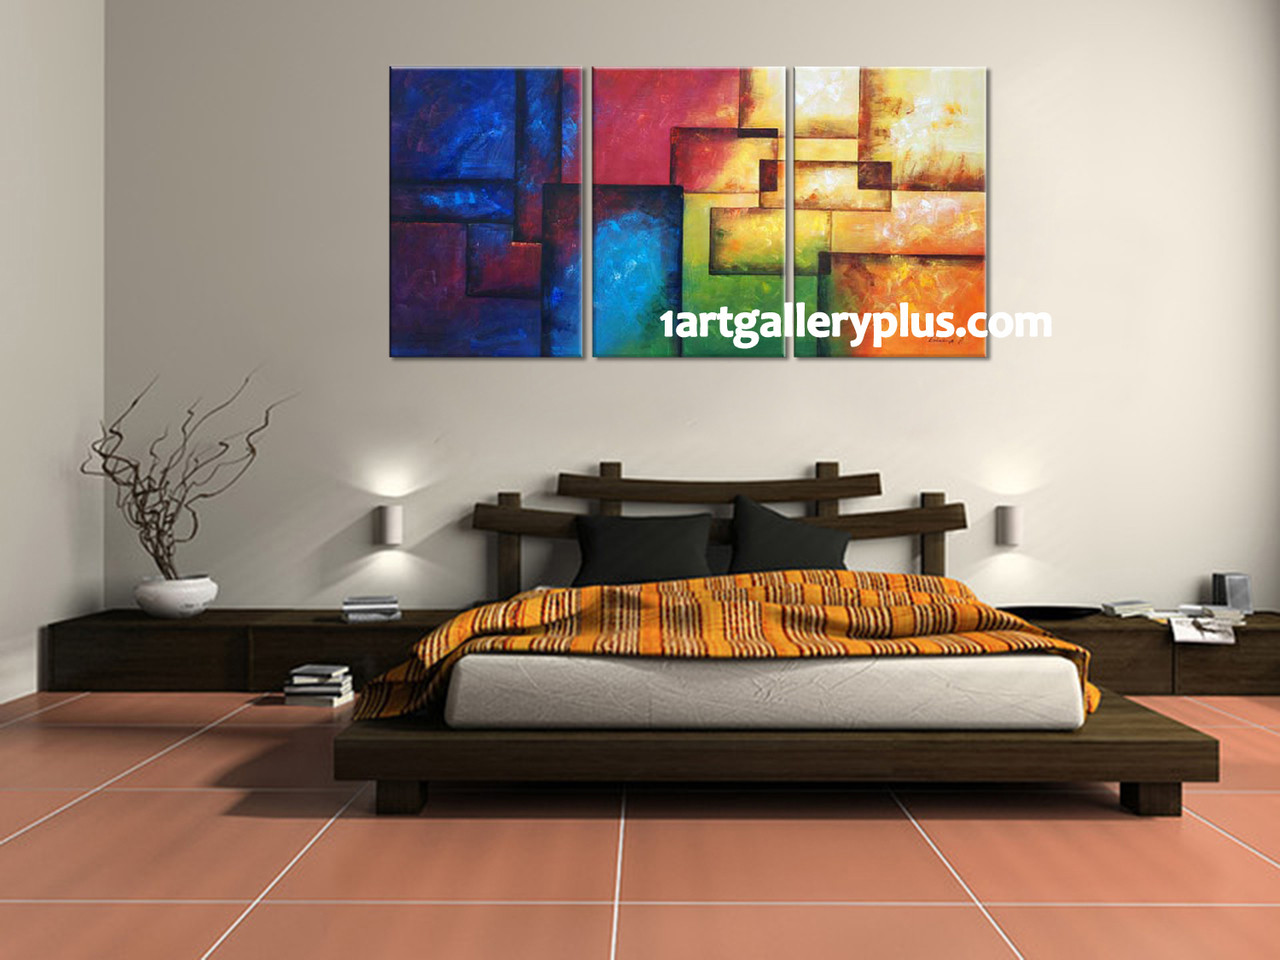 Triptych wall decor colorful artwork abstract huge canvas art 3 piece canvas print bedroom large pictures colorful artwork abstract wall decor amipublicfo Image collections